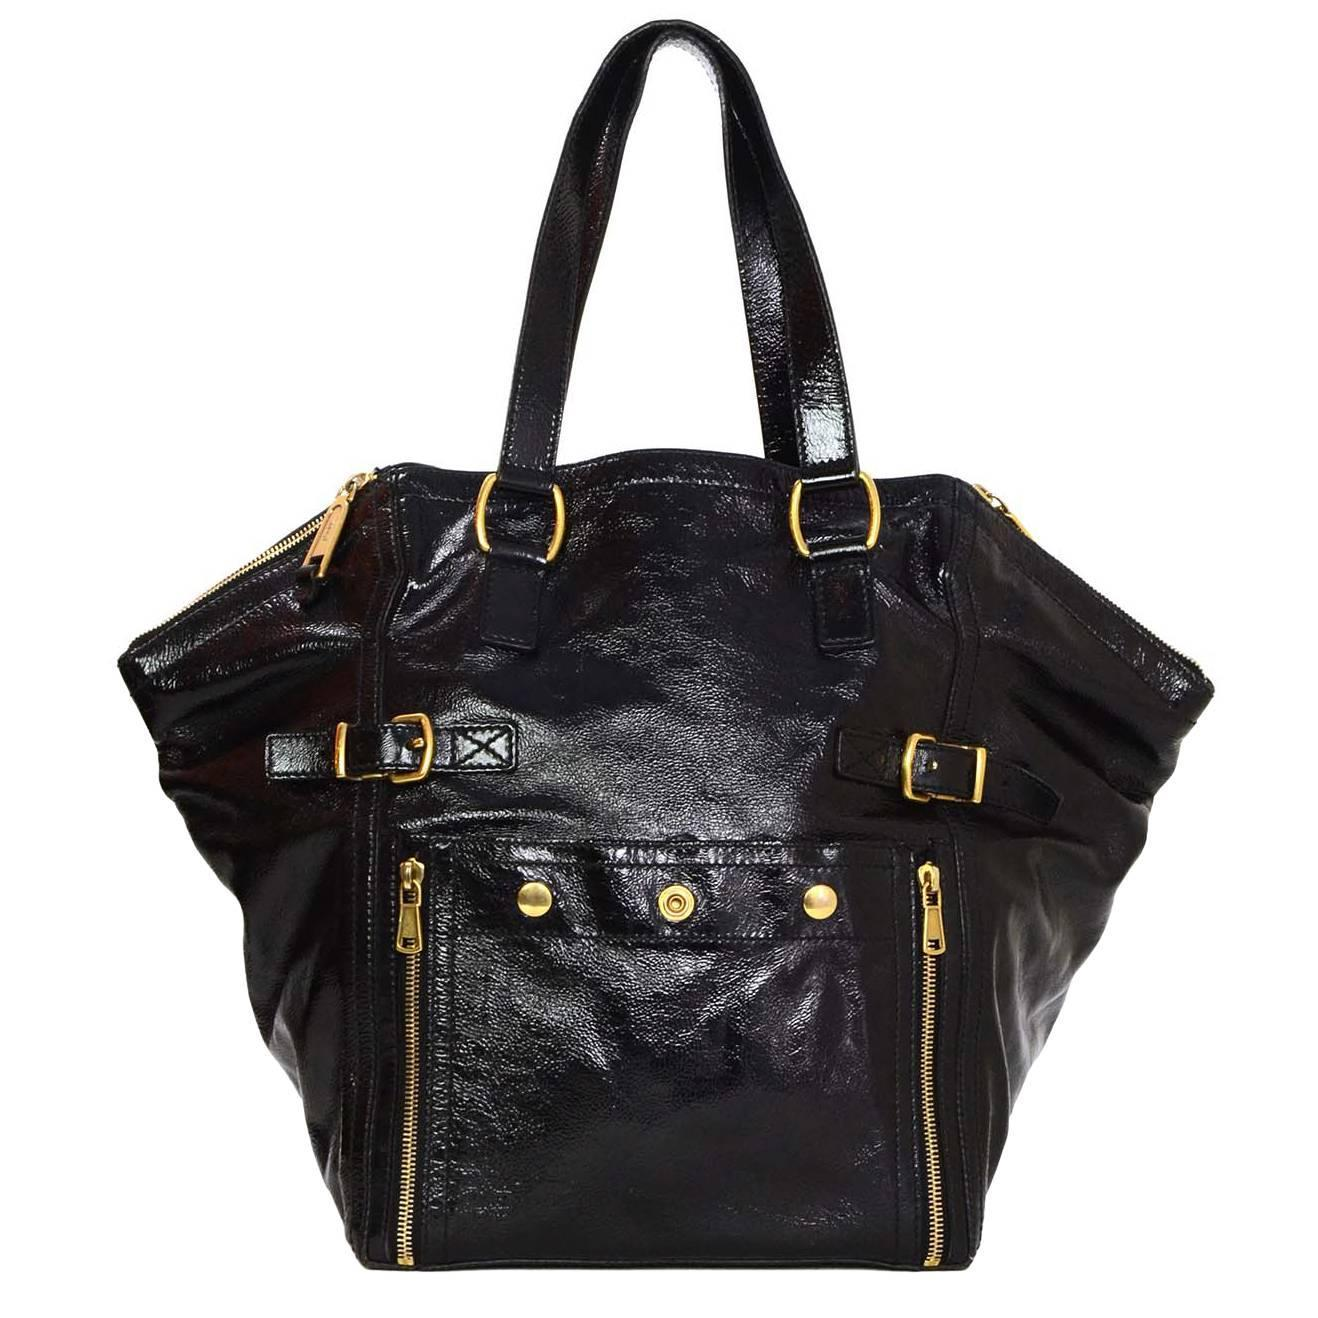 551d7115ac55 Ysl Large Downtown Tote